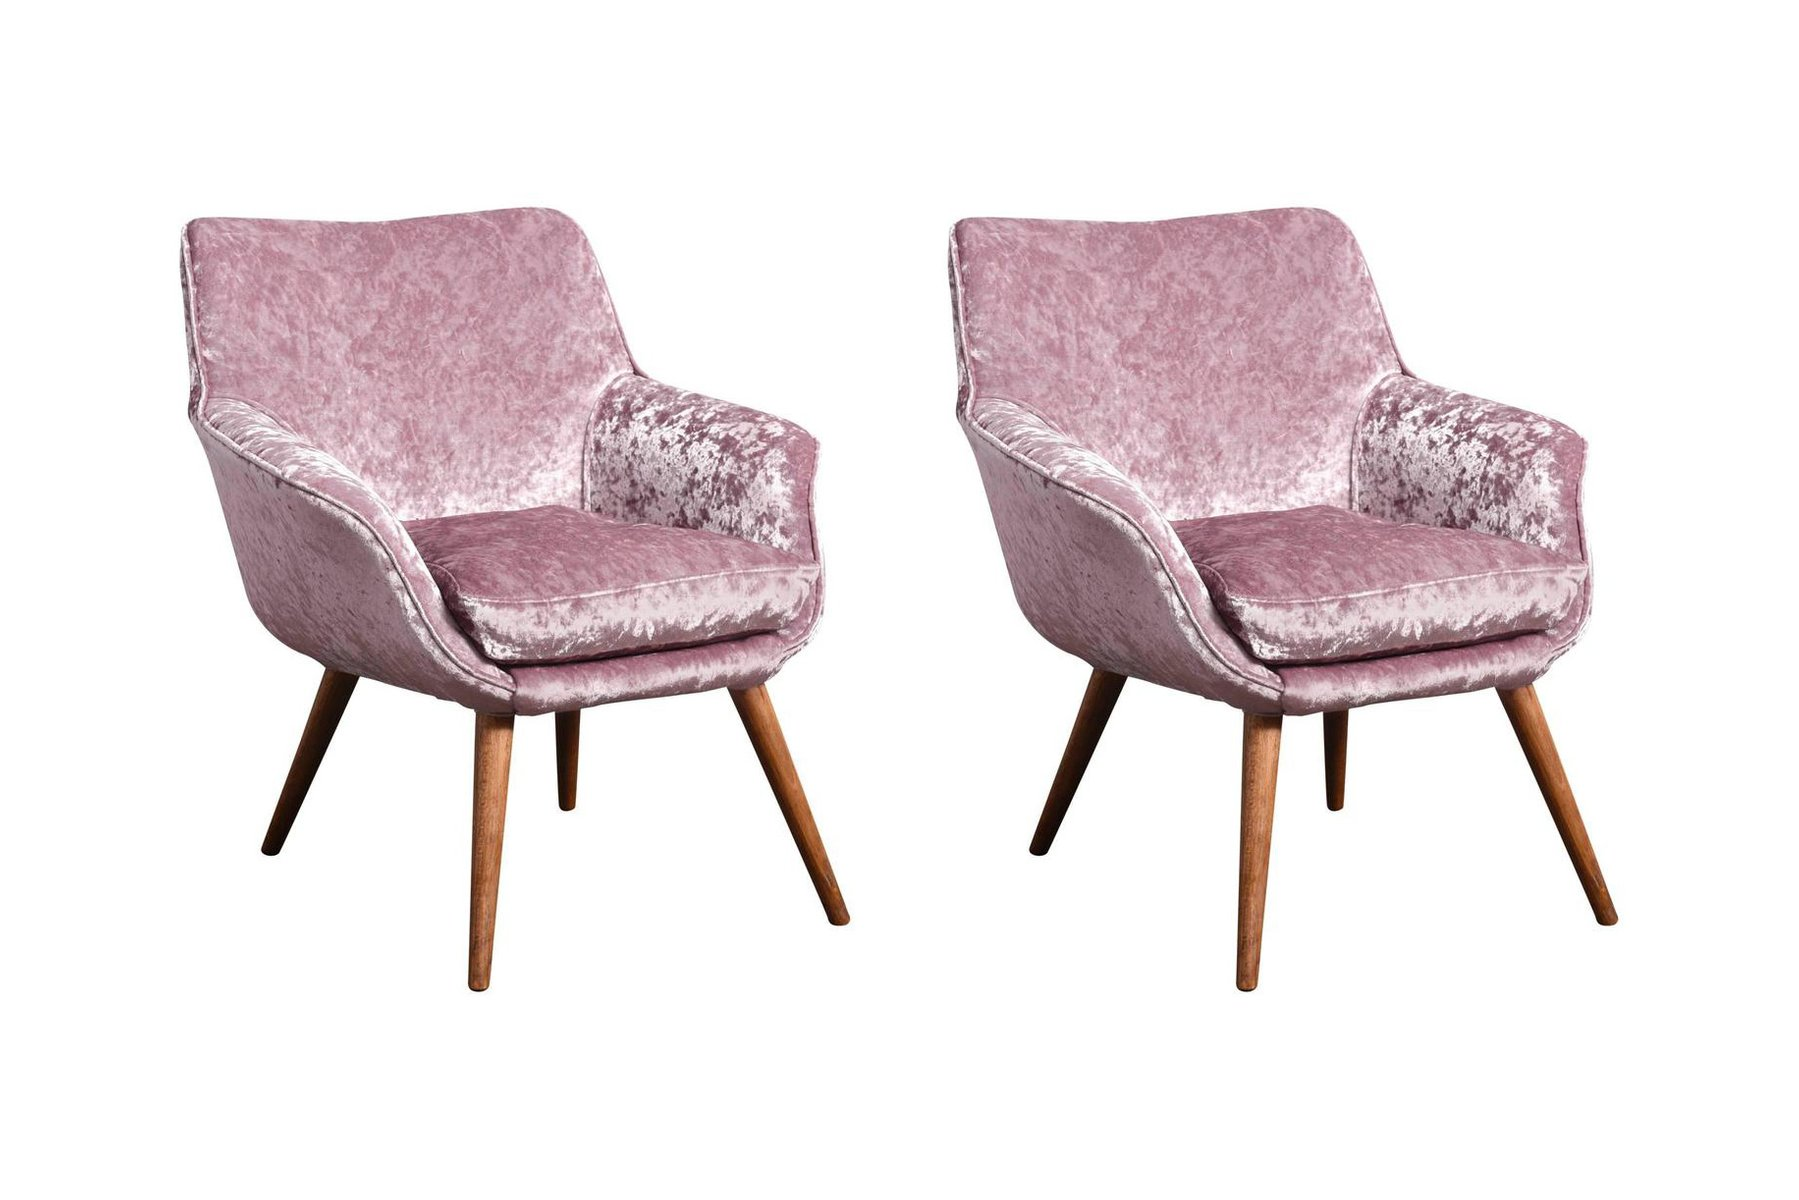 Ash and Velvet Cocktail Chairs 1960s Set of 2 for sale at Pamono